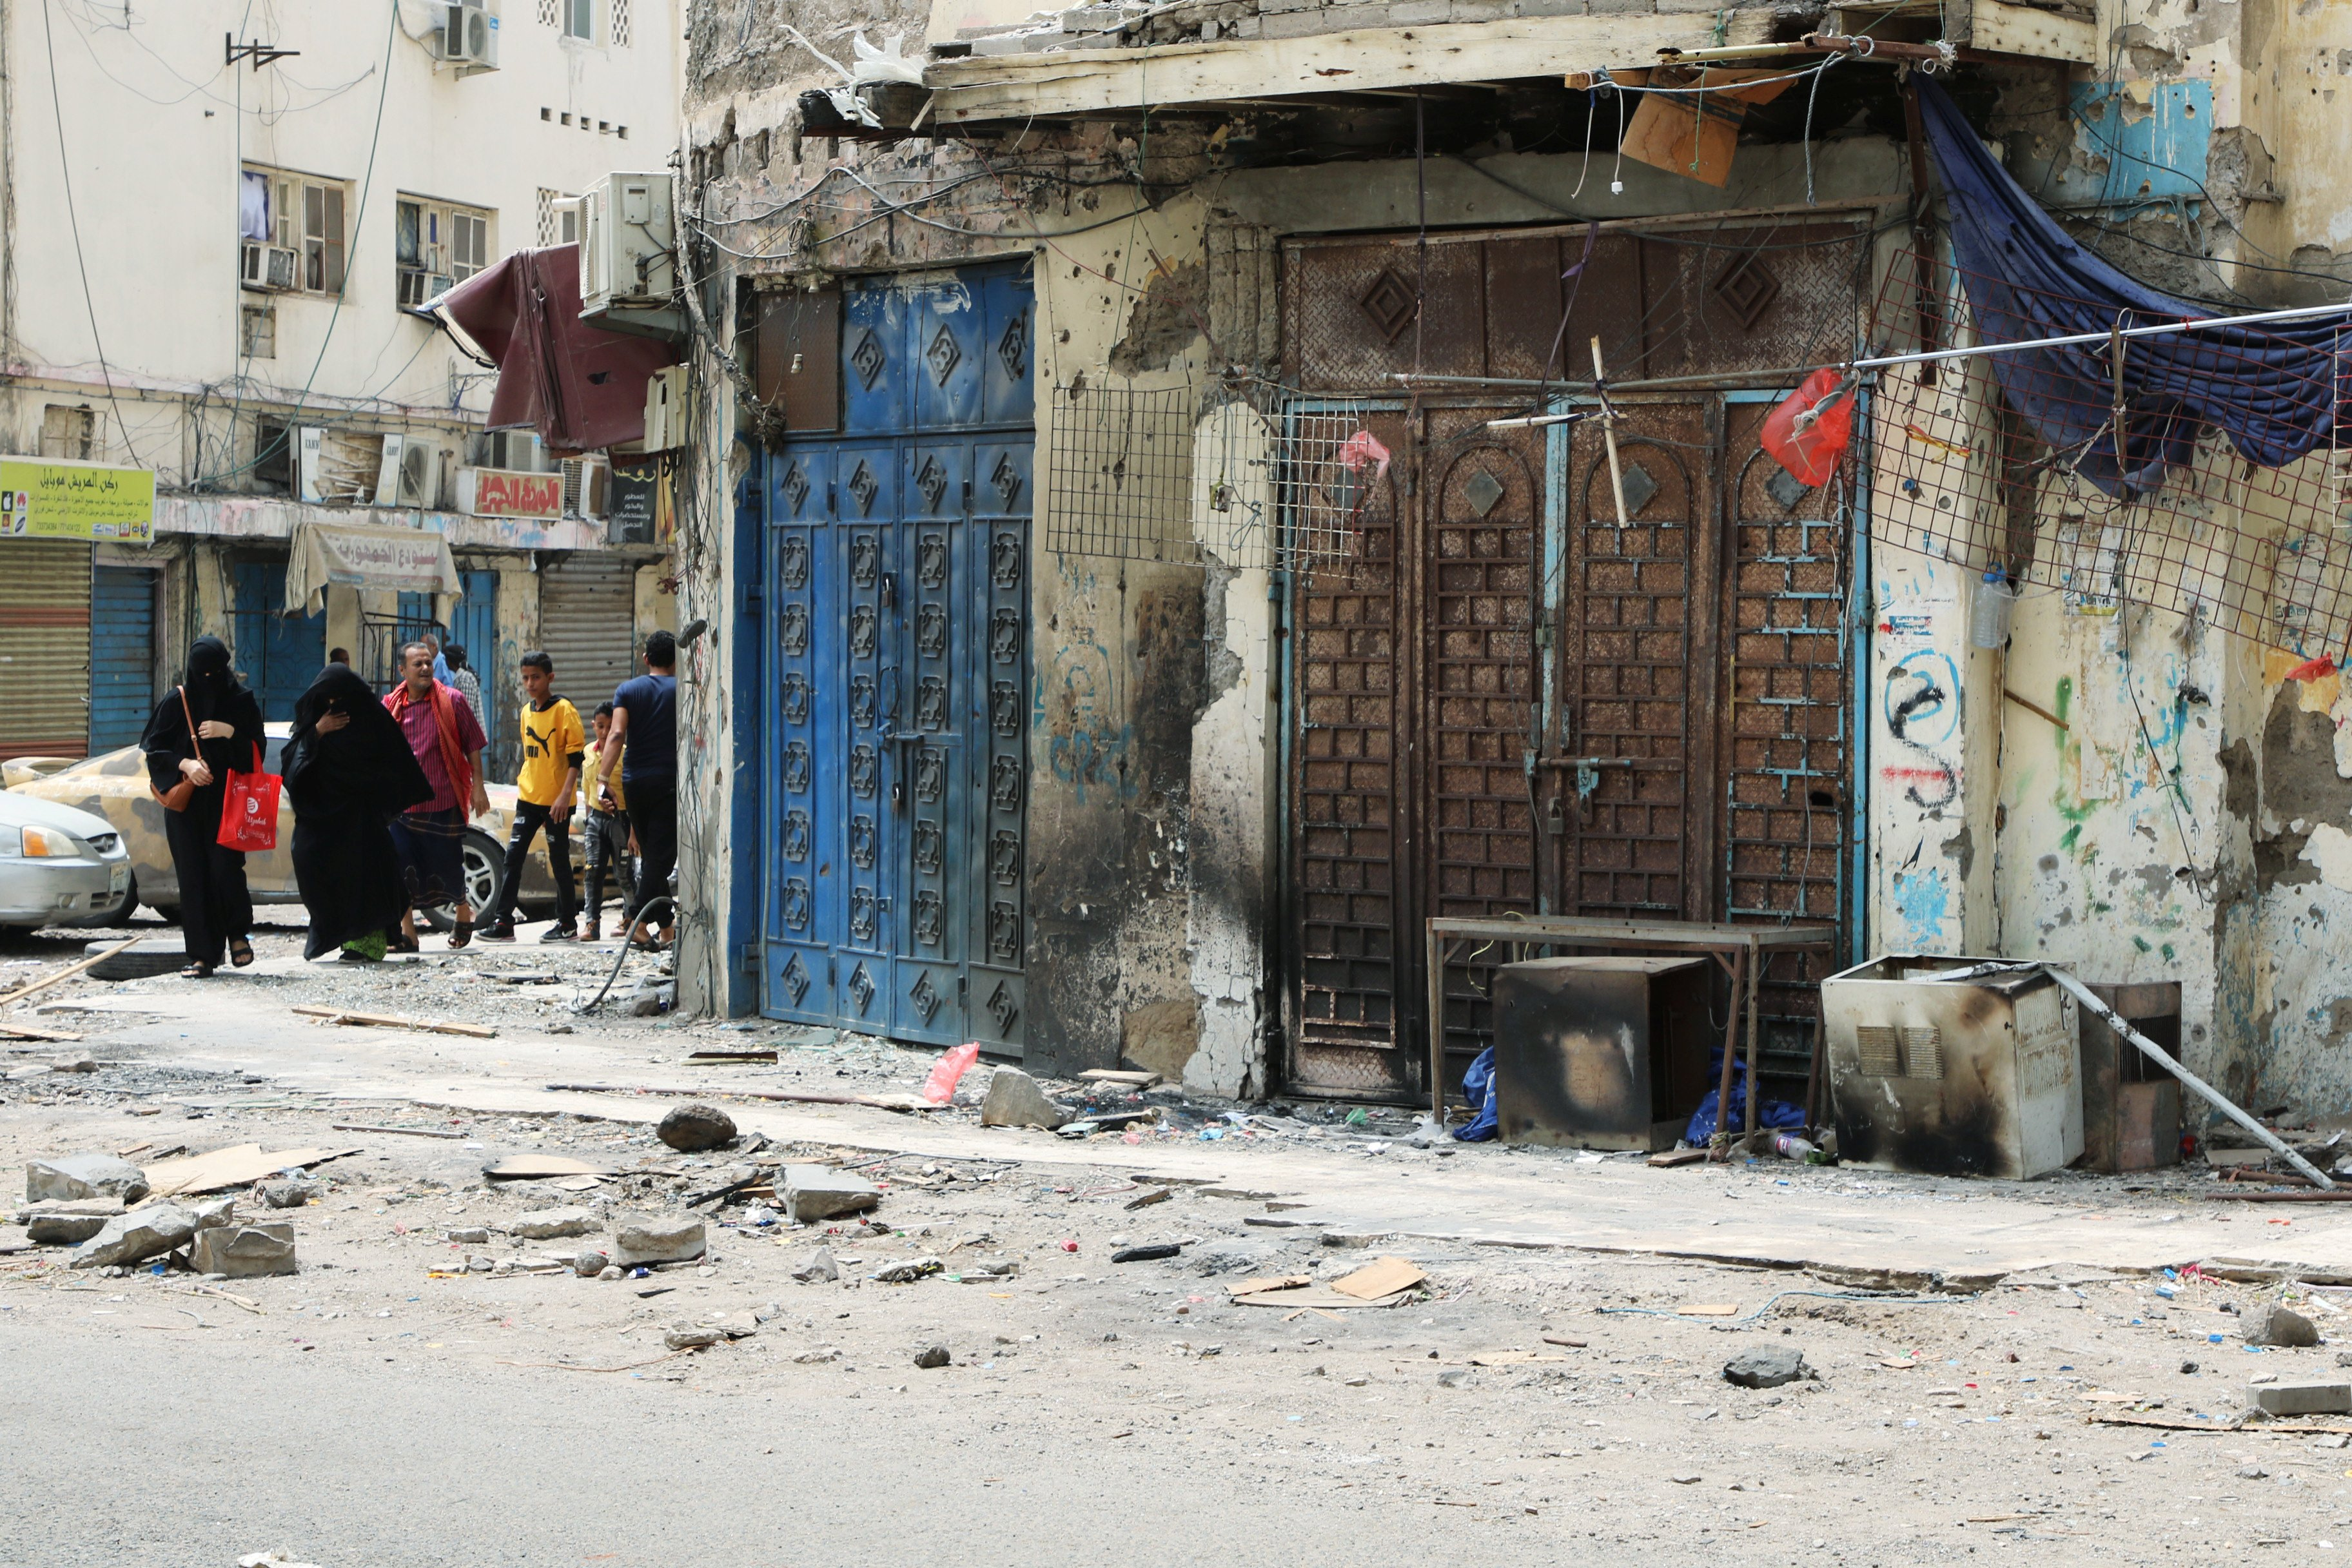 Yemenis walk past shops damaged during clashes in Aden (Reuters)